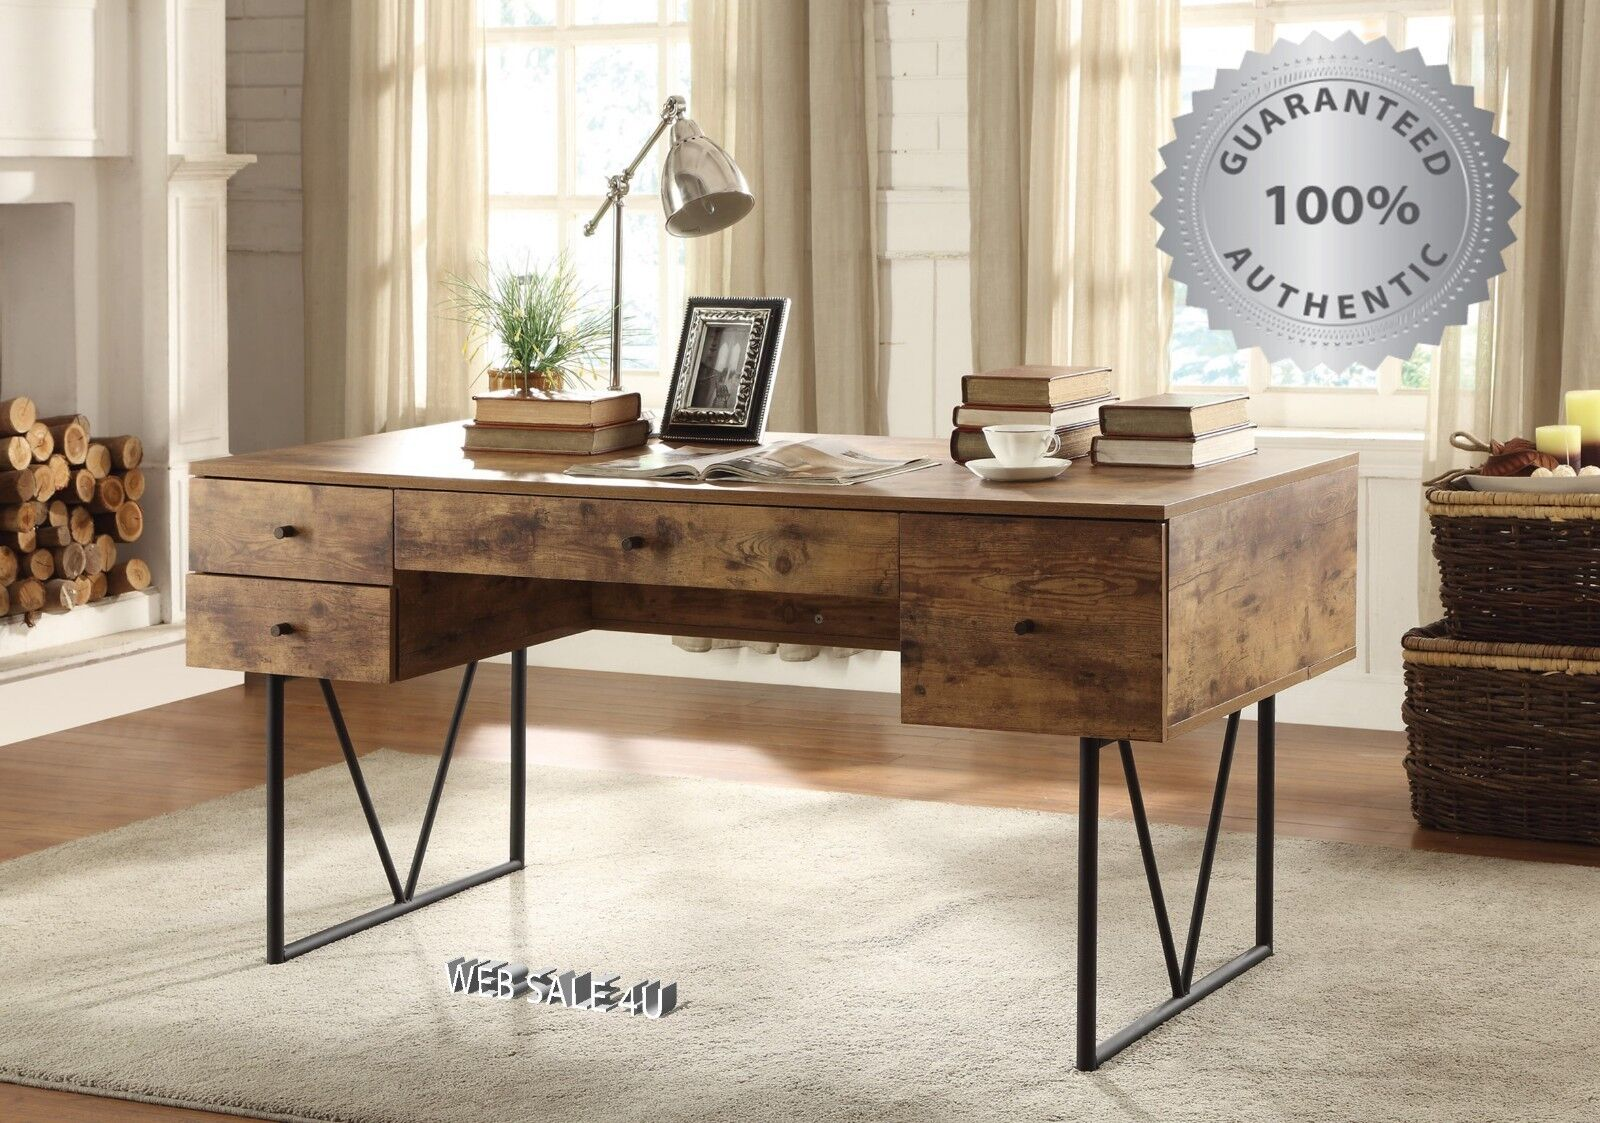 Writing Desk Drawers Vintage Industrial Style Table Rustic Modern Farmhouse Wood For Sale Online